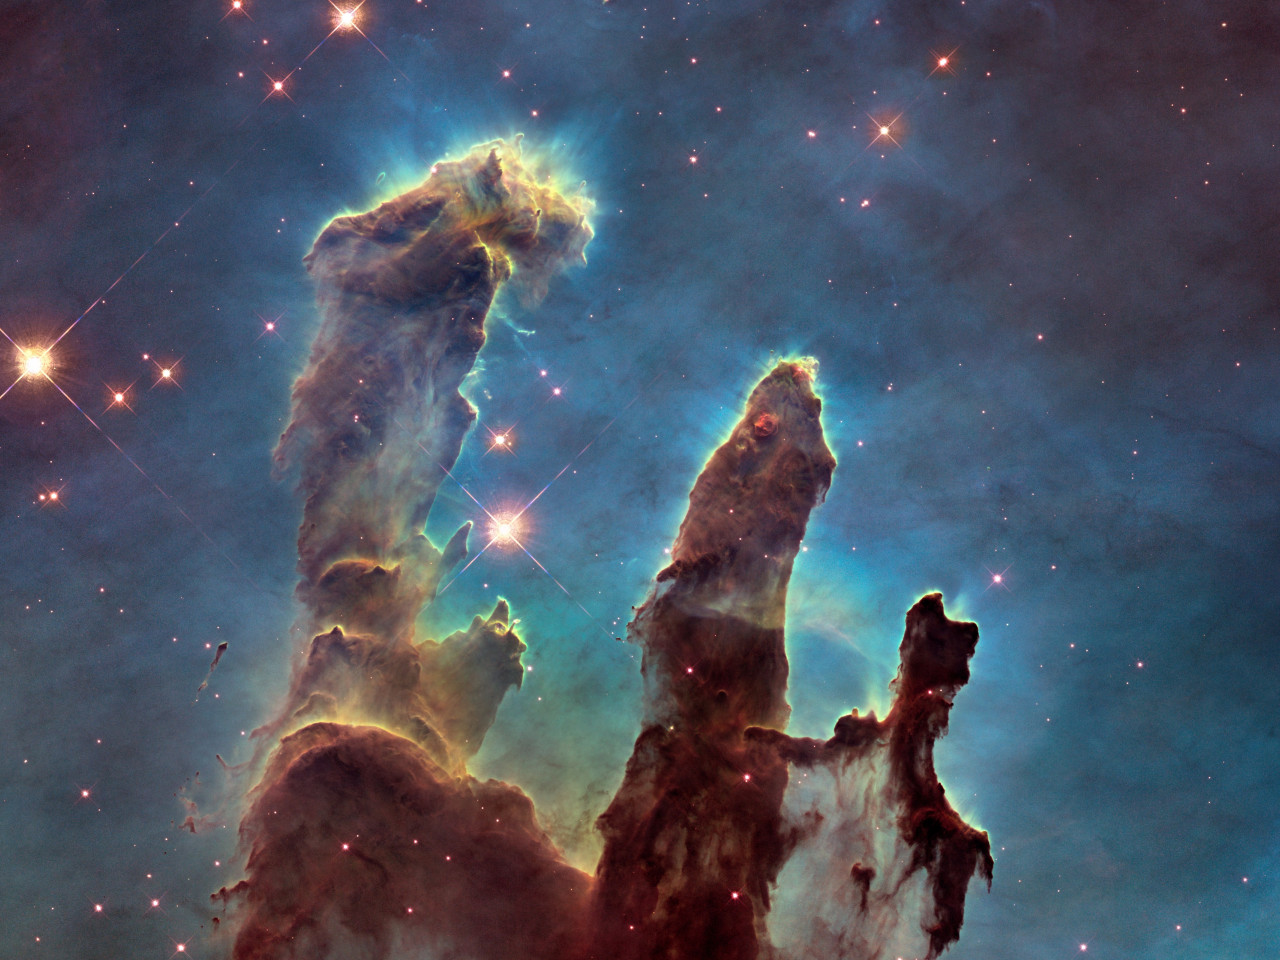 The Eagle Nebula's Pillars of Creation | 1280x960 wallpaper